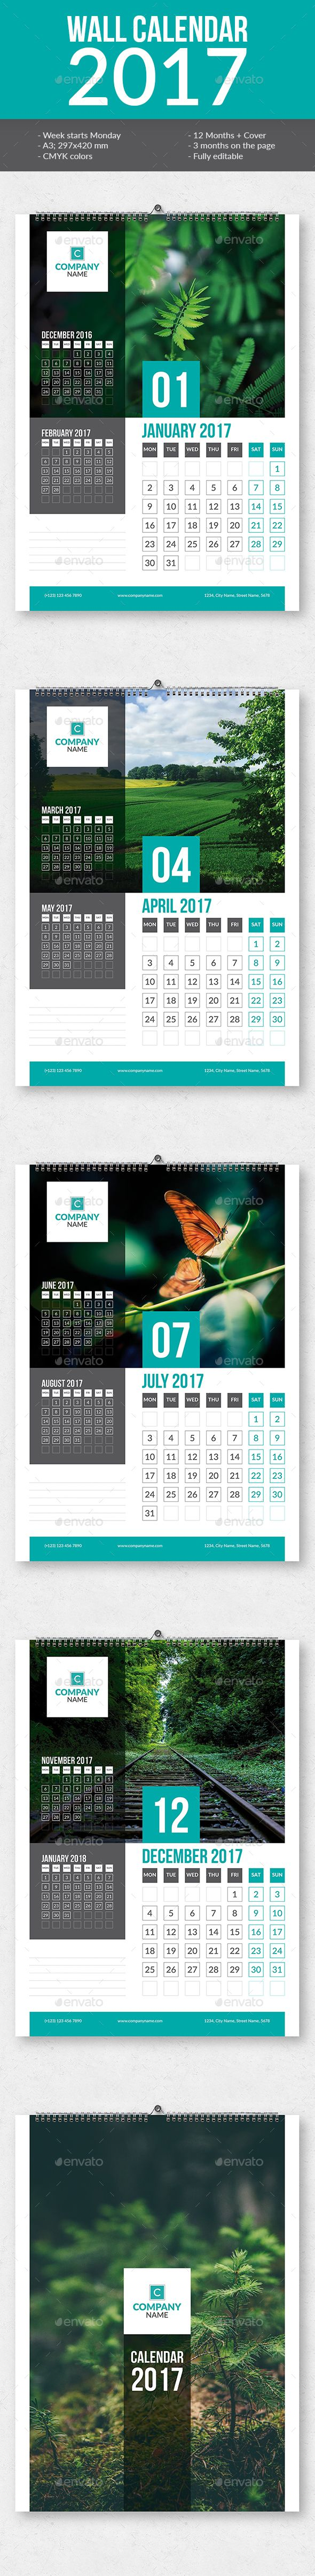 Wall Calendar 2017 Template InDesign INDD